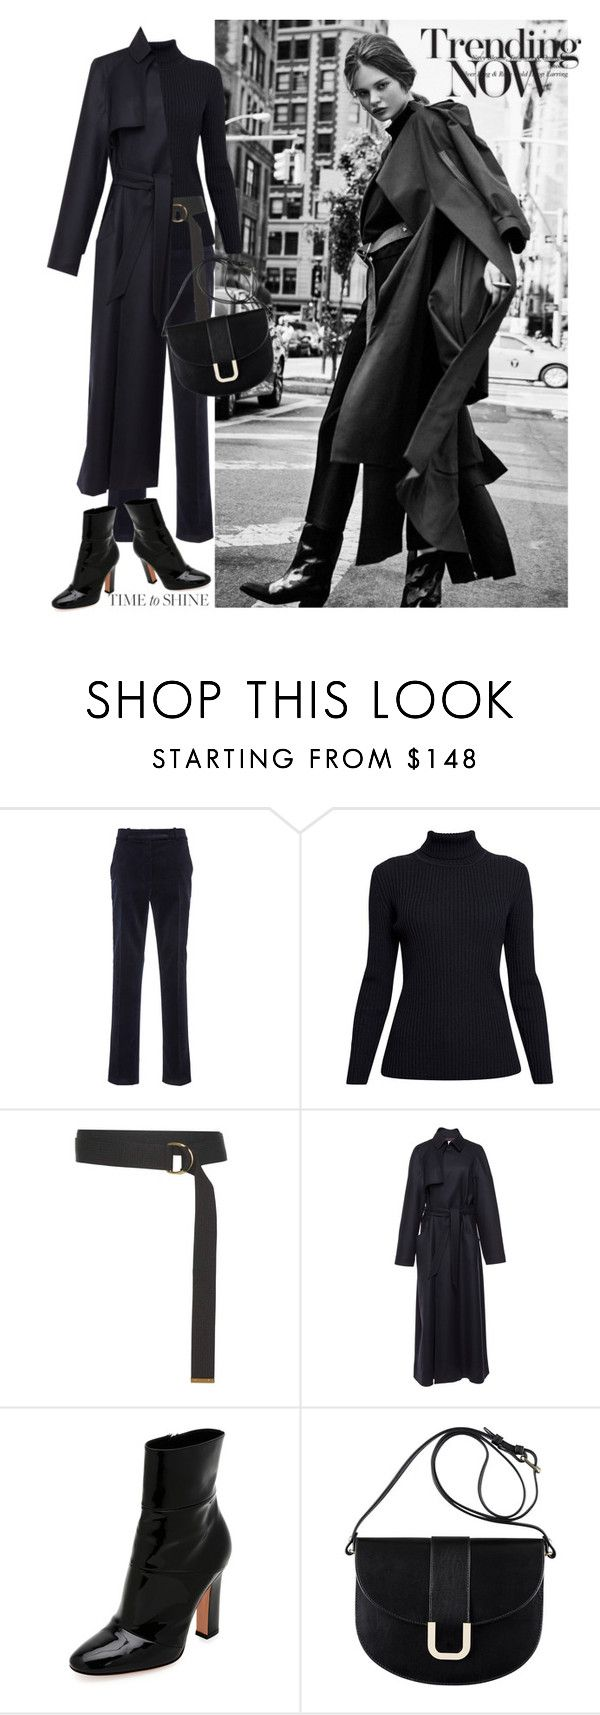 """""""Looking Smart"""" by jacque-reid ❤ liked on Polyvore featuring Martin Grant, Rumour London, Marni, Gianvito Rossi and A.P.C."""